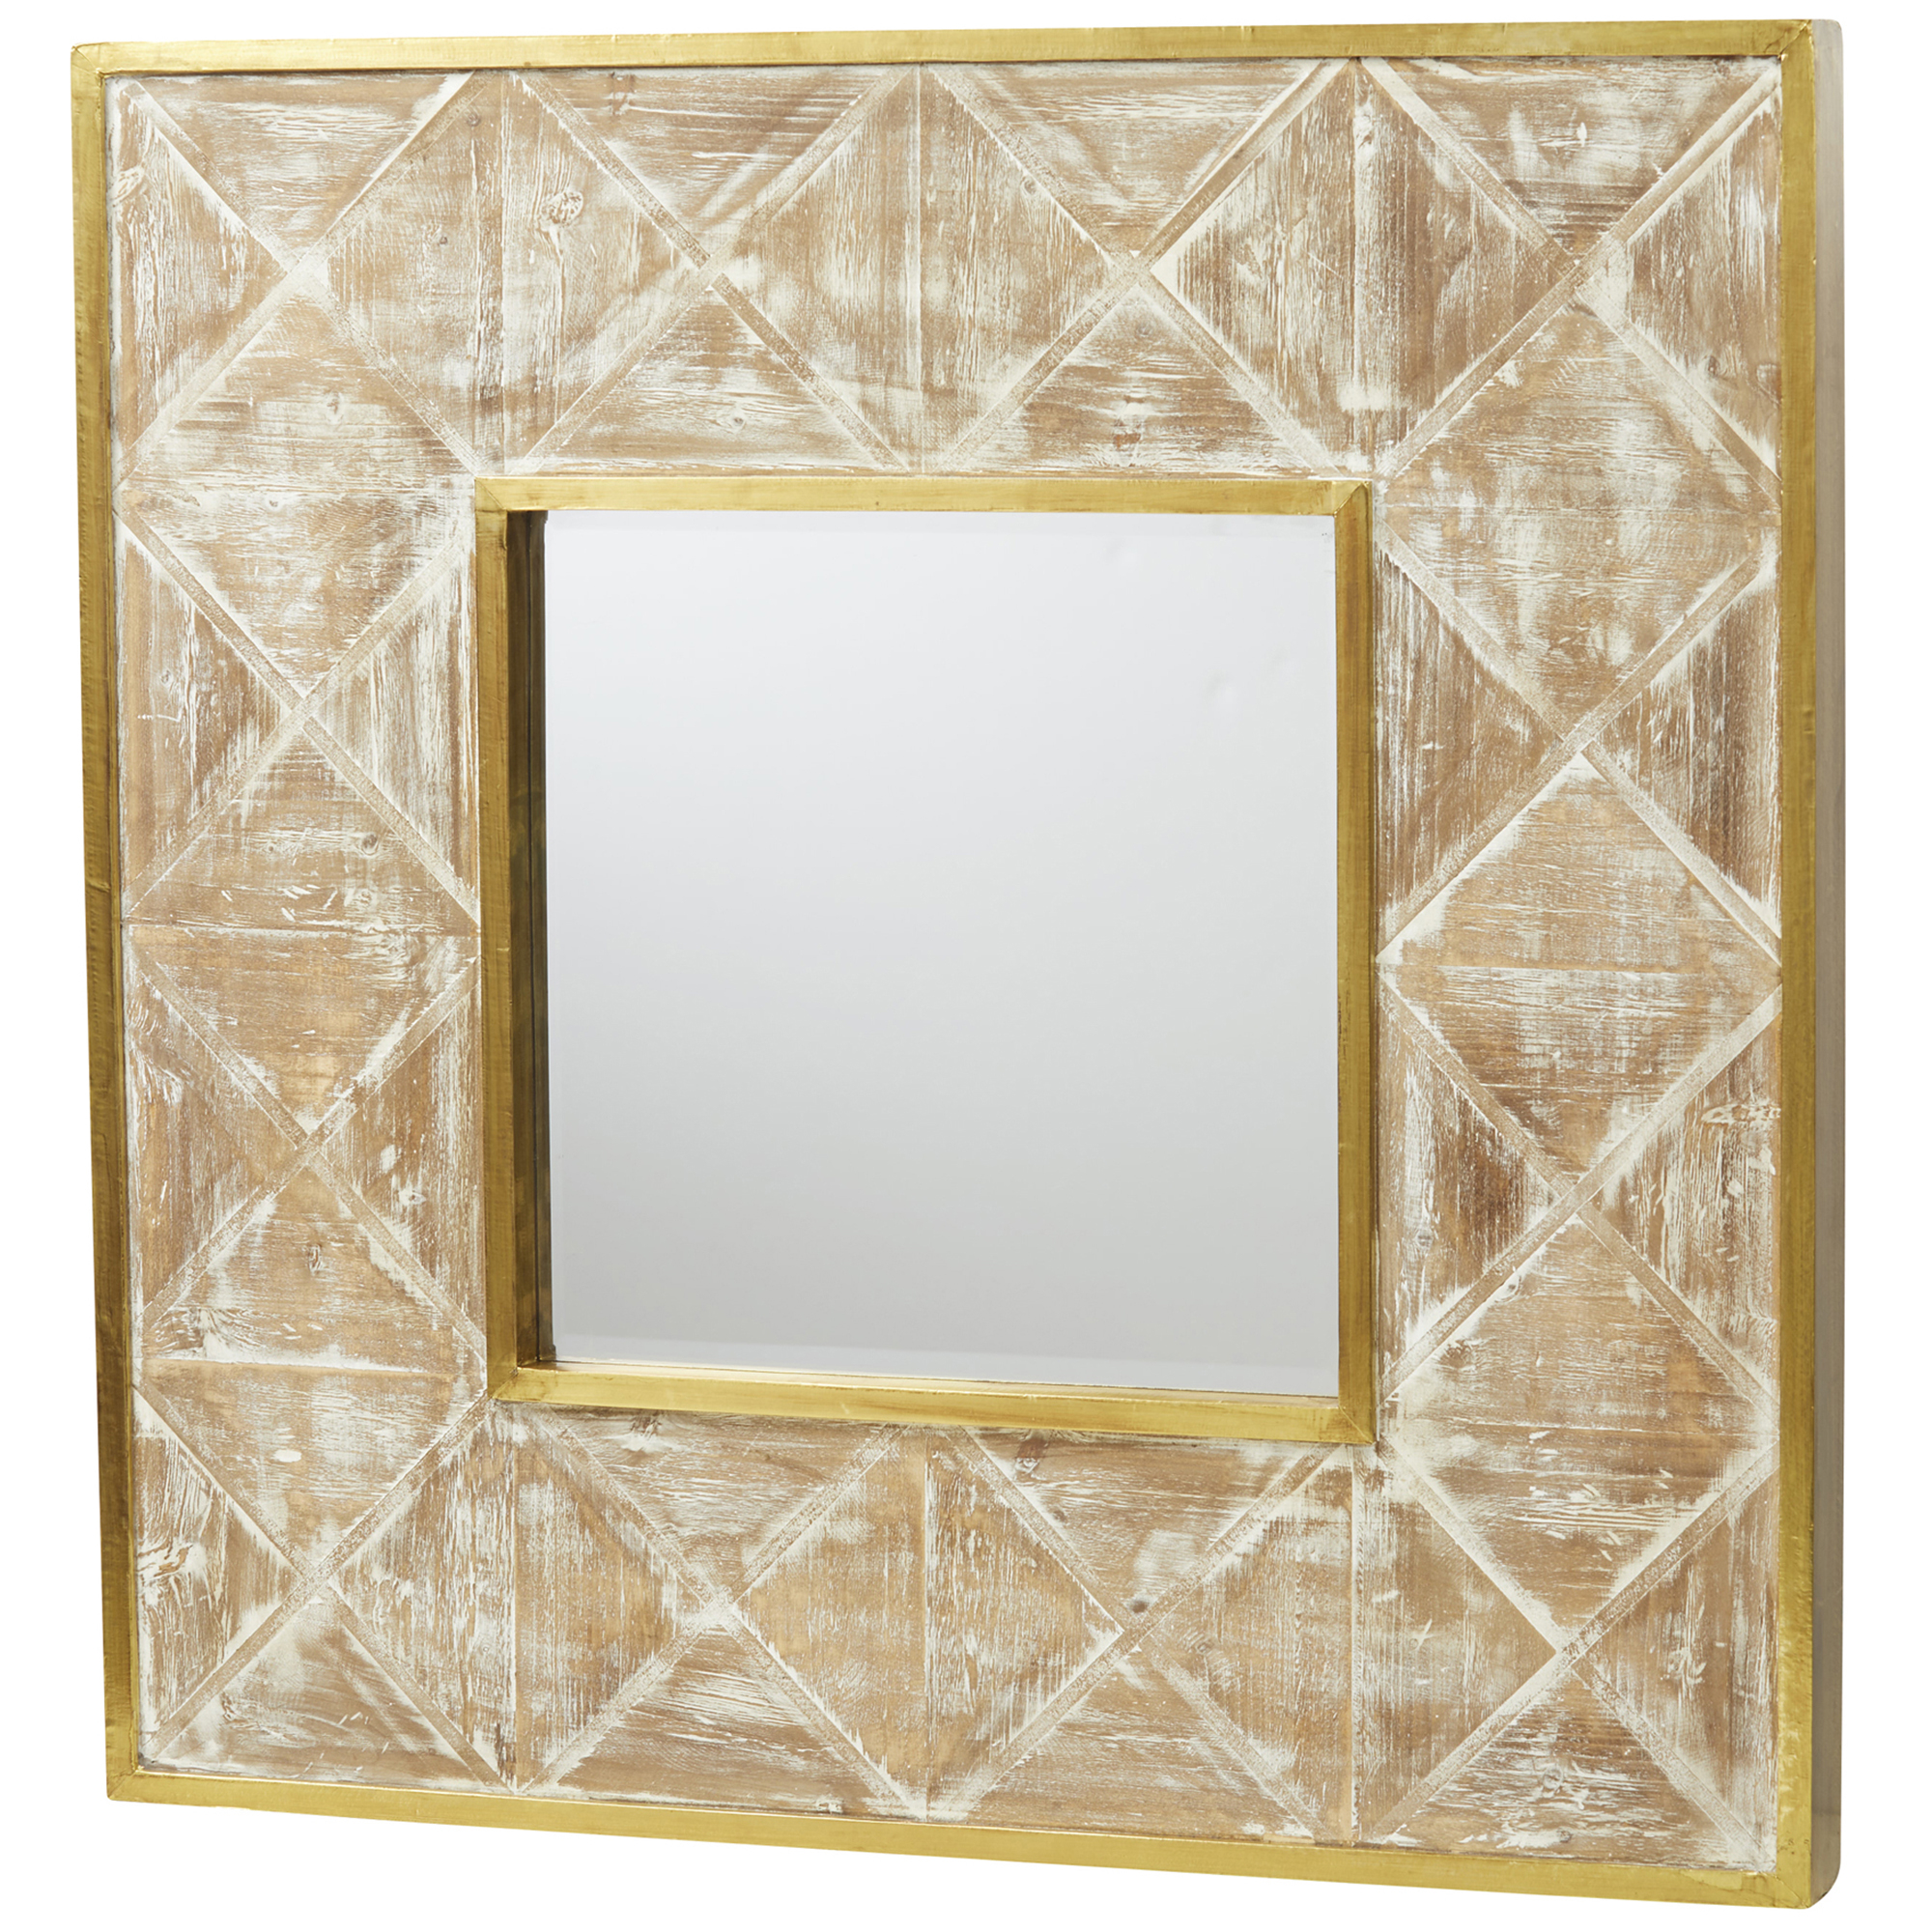 Wooden Wall Mirrors In Most Current Isadora Wooden Wall Mirror (View 16 of 20)